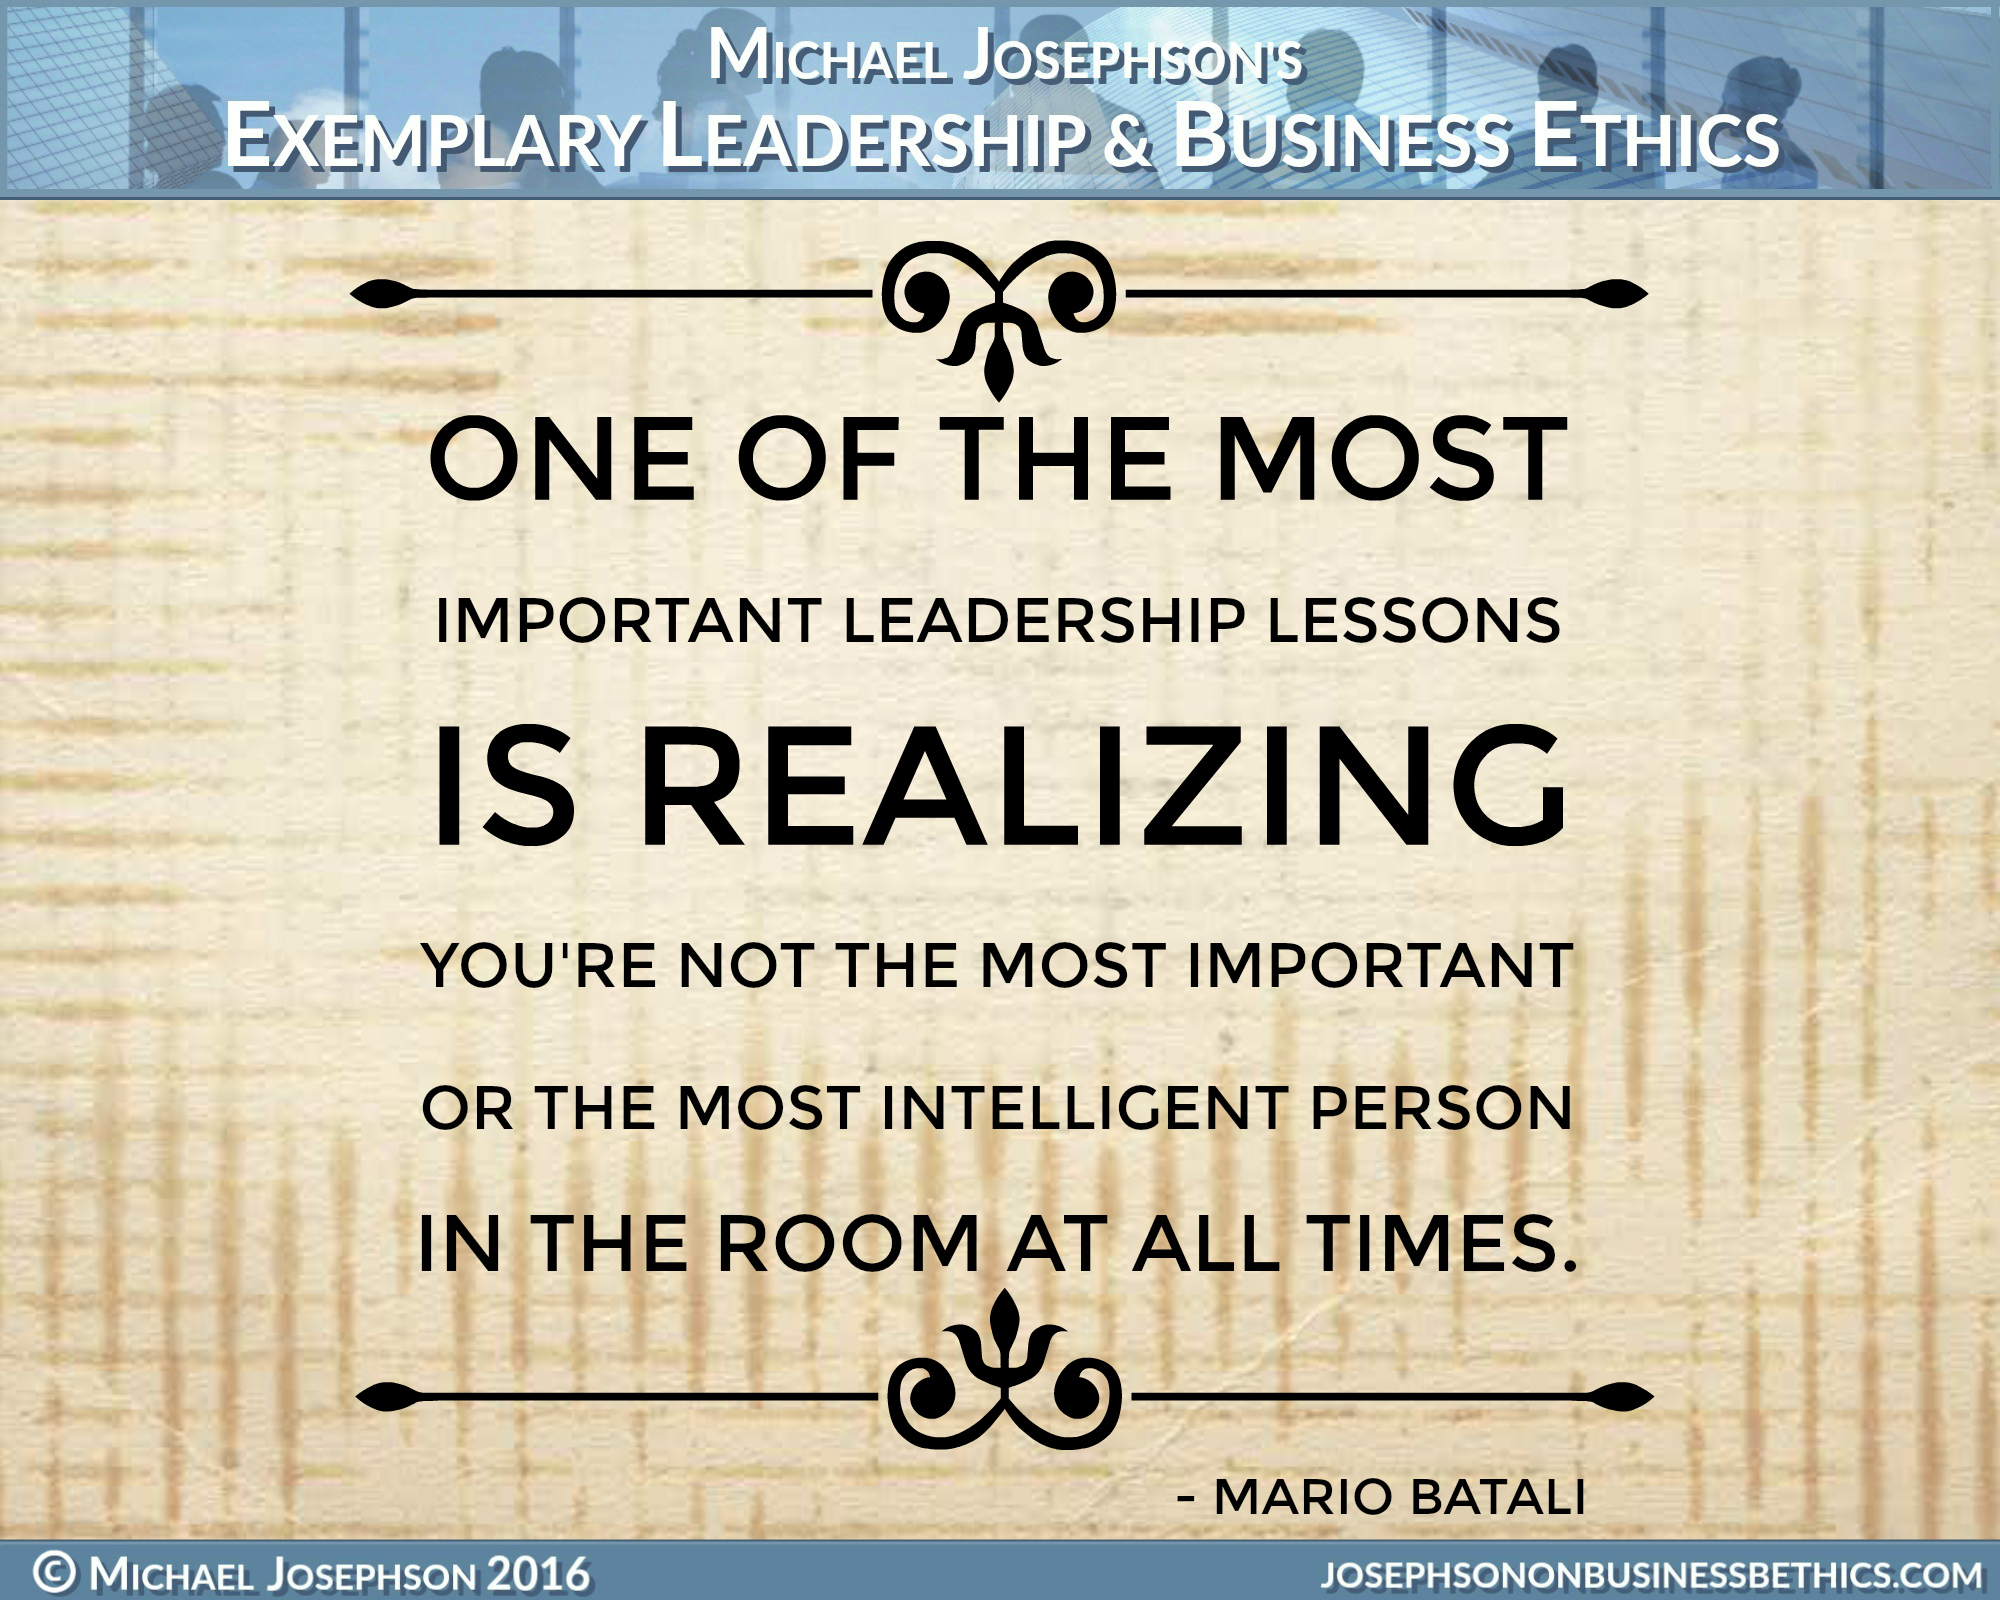 The Energy Bus Quotes Best Ever Poster Quotes On Leadership  Exemplary Business Ethics